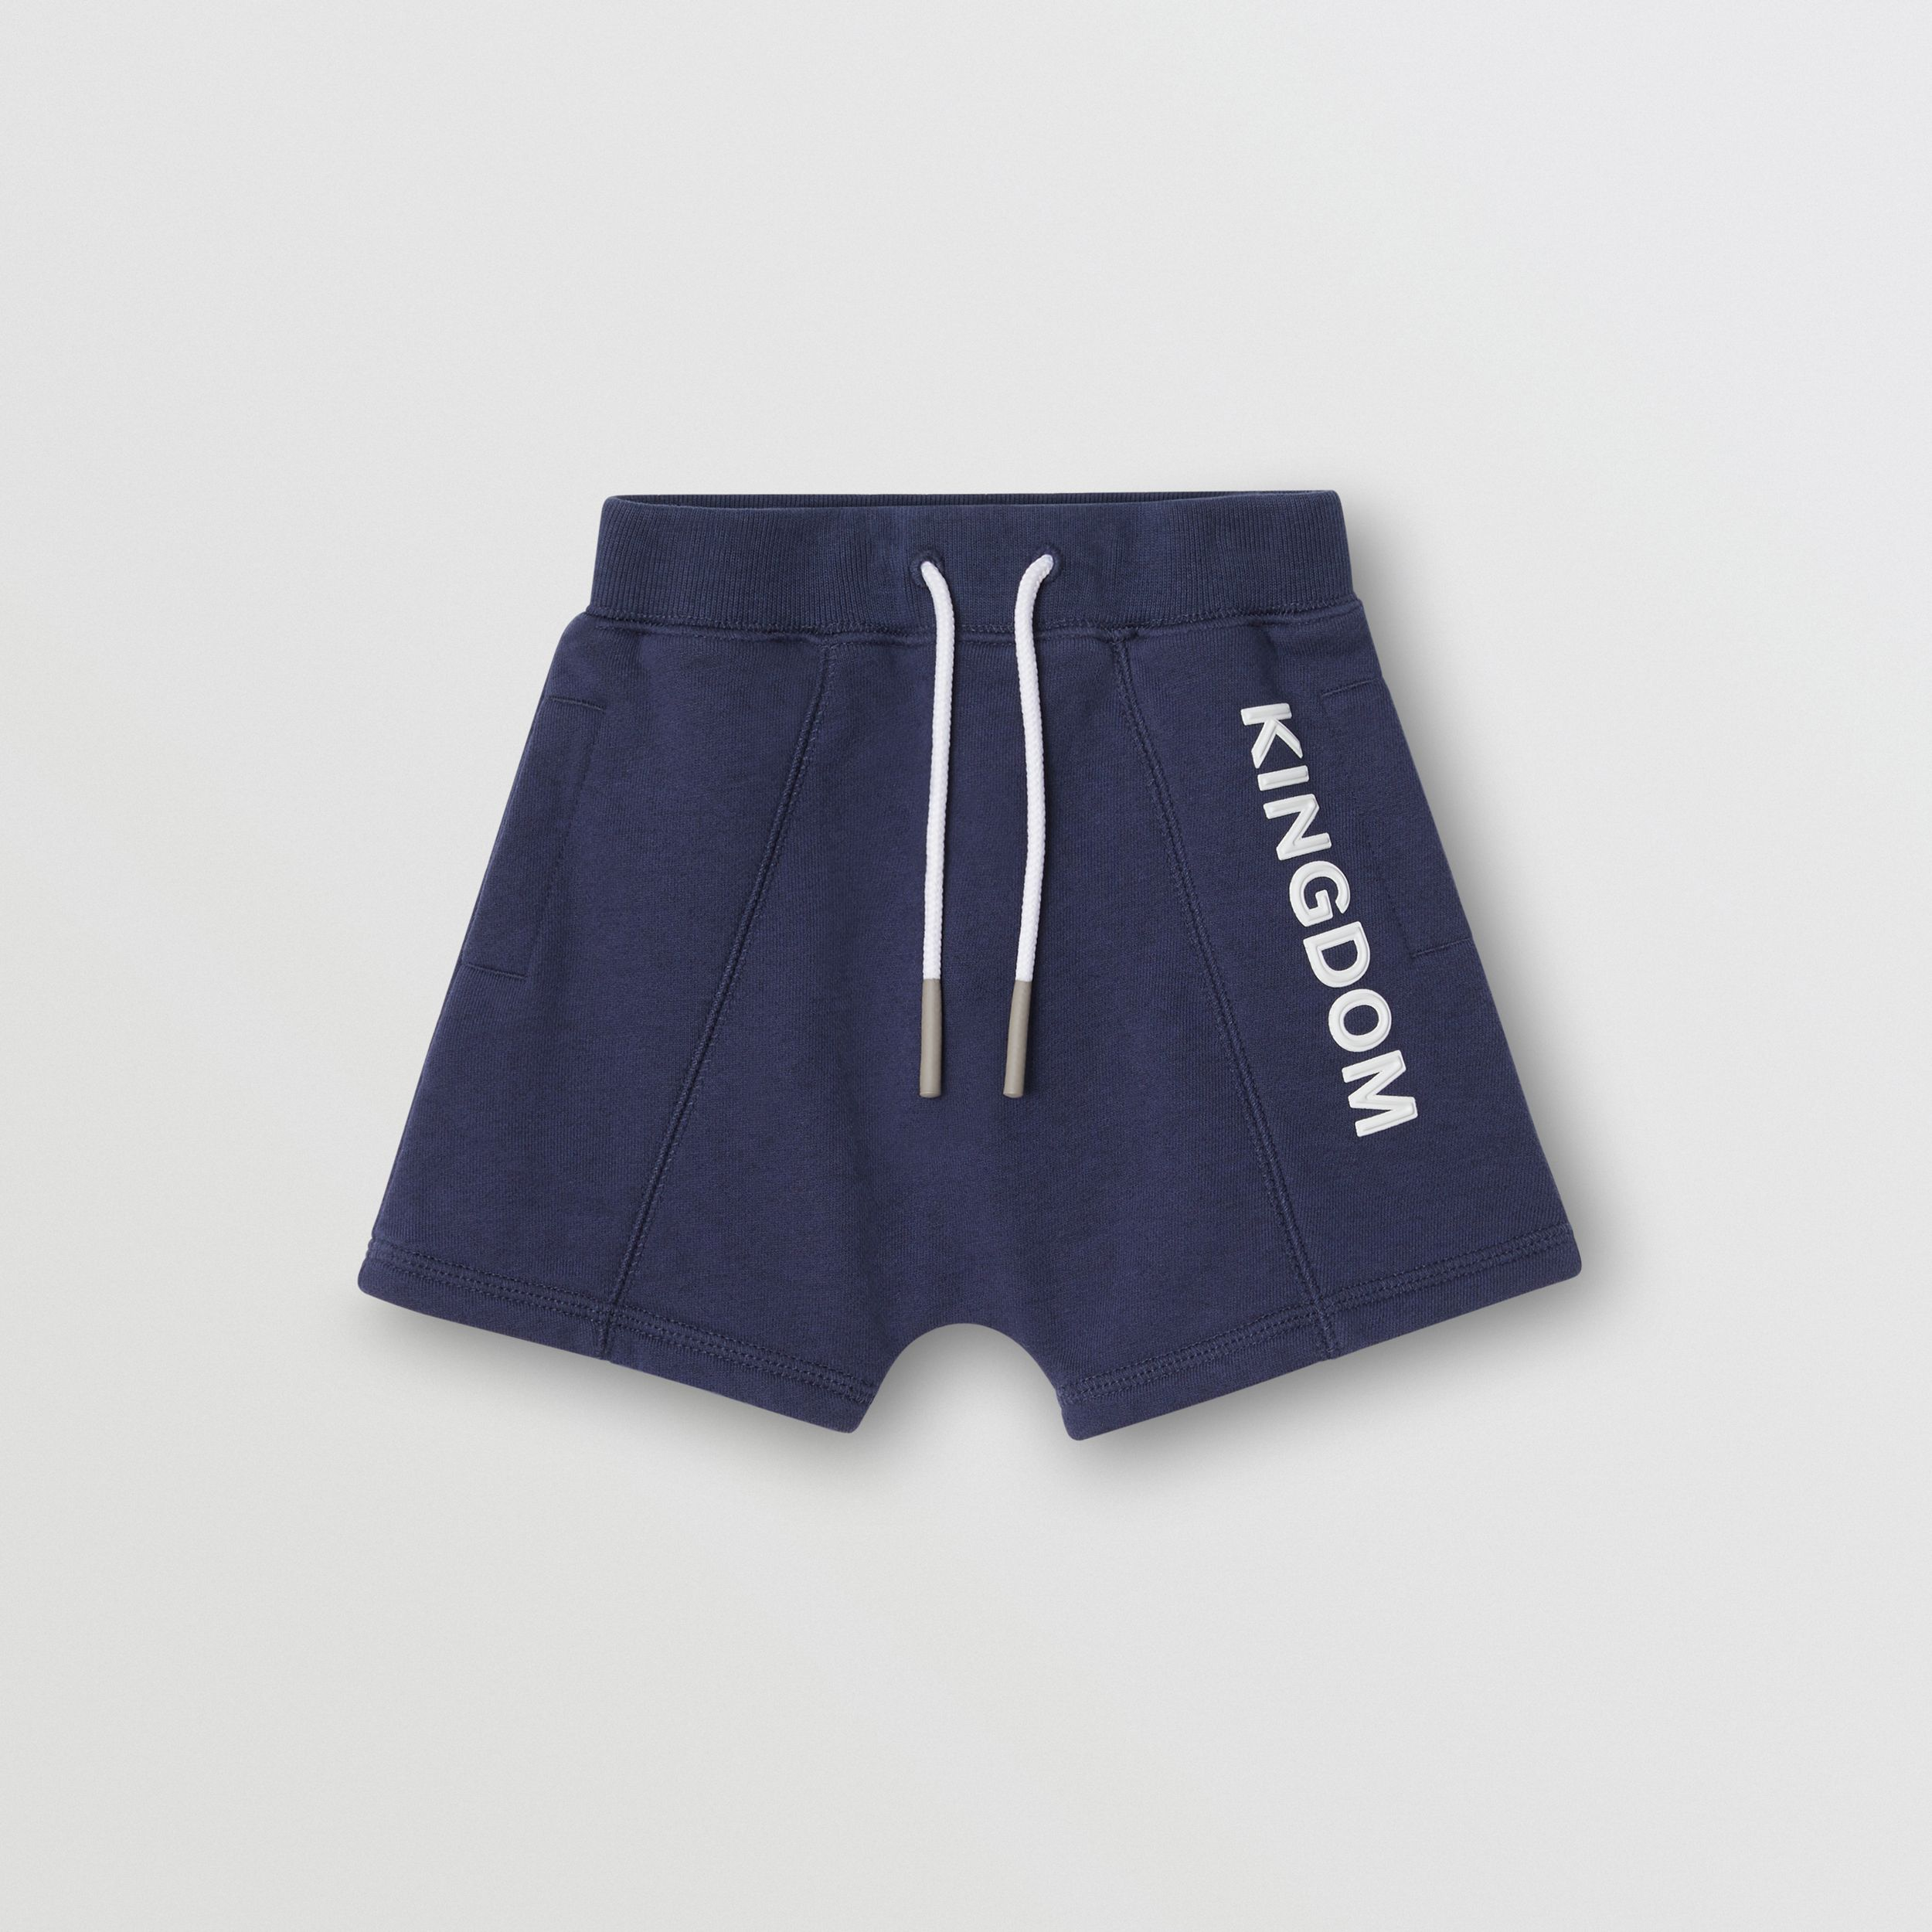 Kingdom Motif Cotton Drawcord Shorts in Slate Blue Melange | Burberry - 1